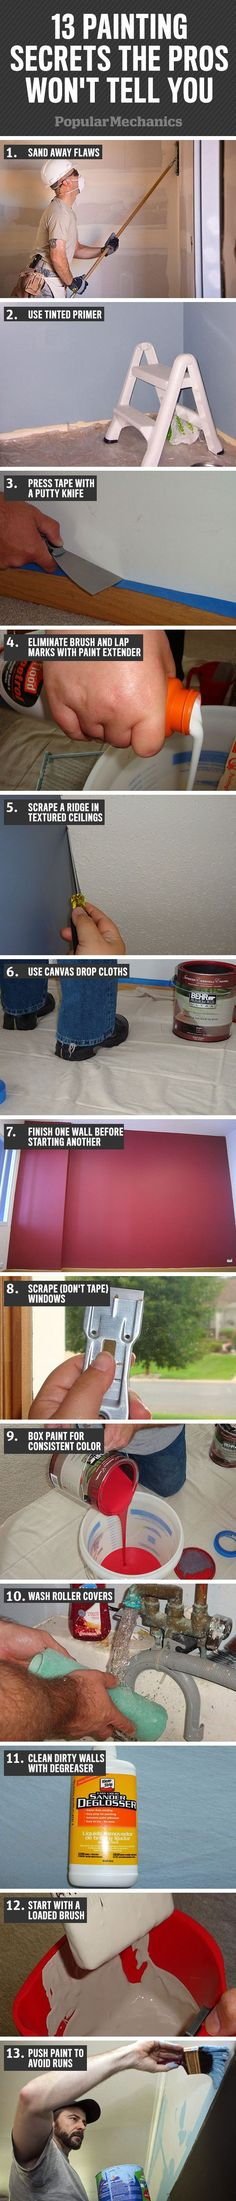 Each painter has slightly different methods and preferences, but the pros all know the trade secrets, and PM hung out with them and watched them work to gather these 13 tips.